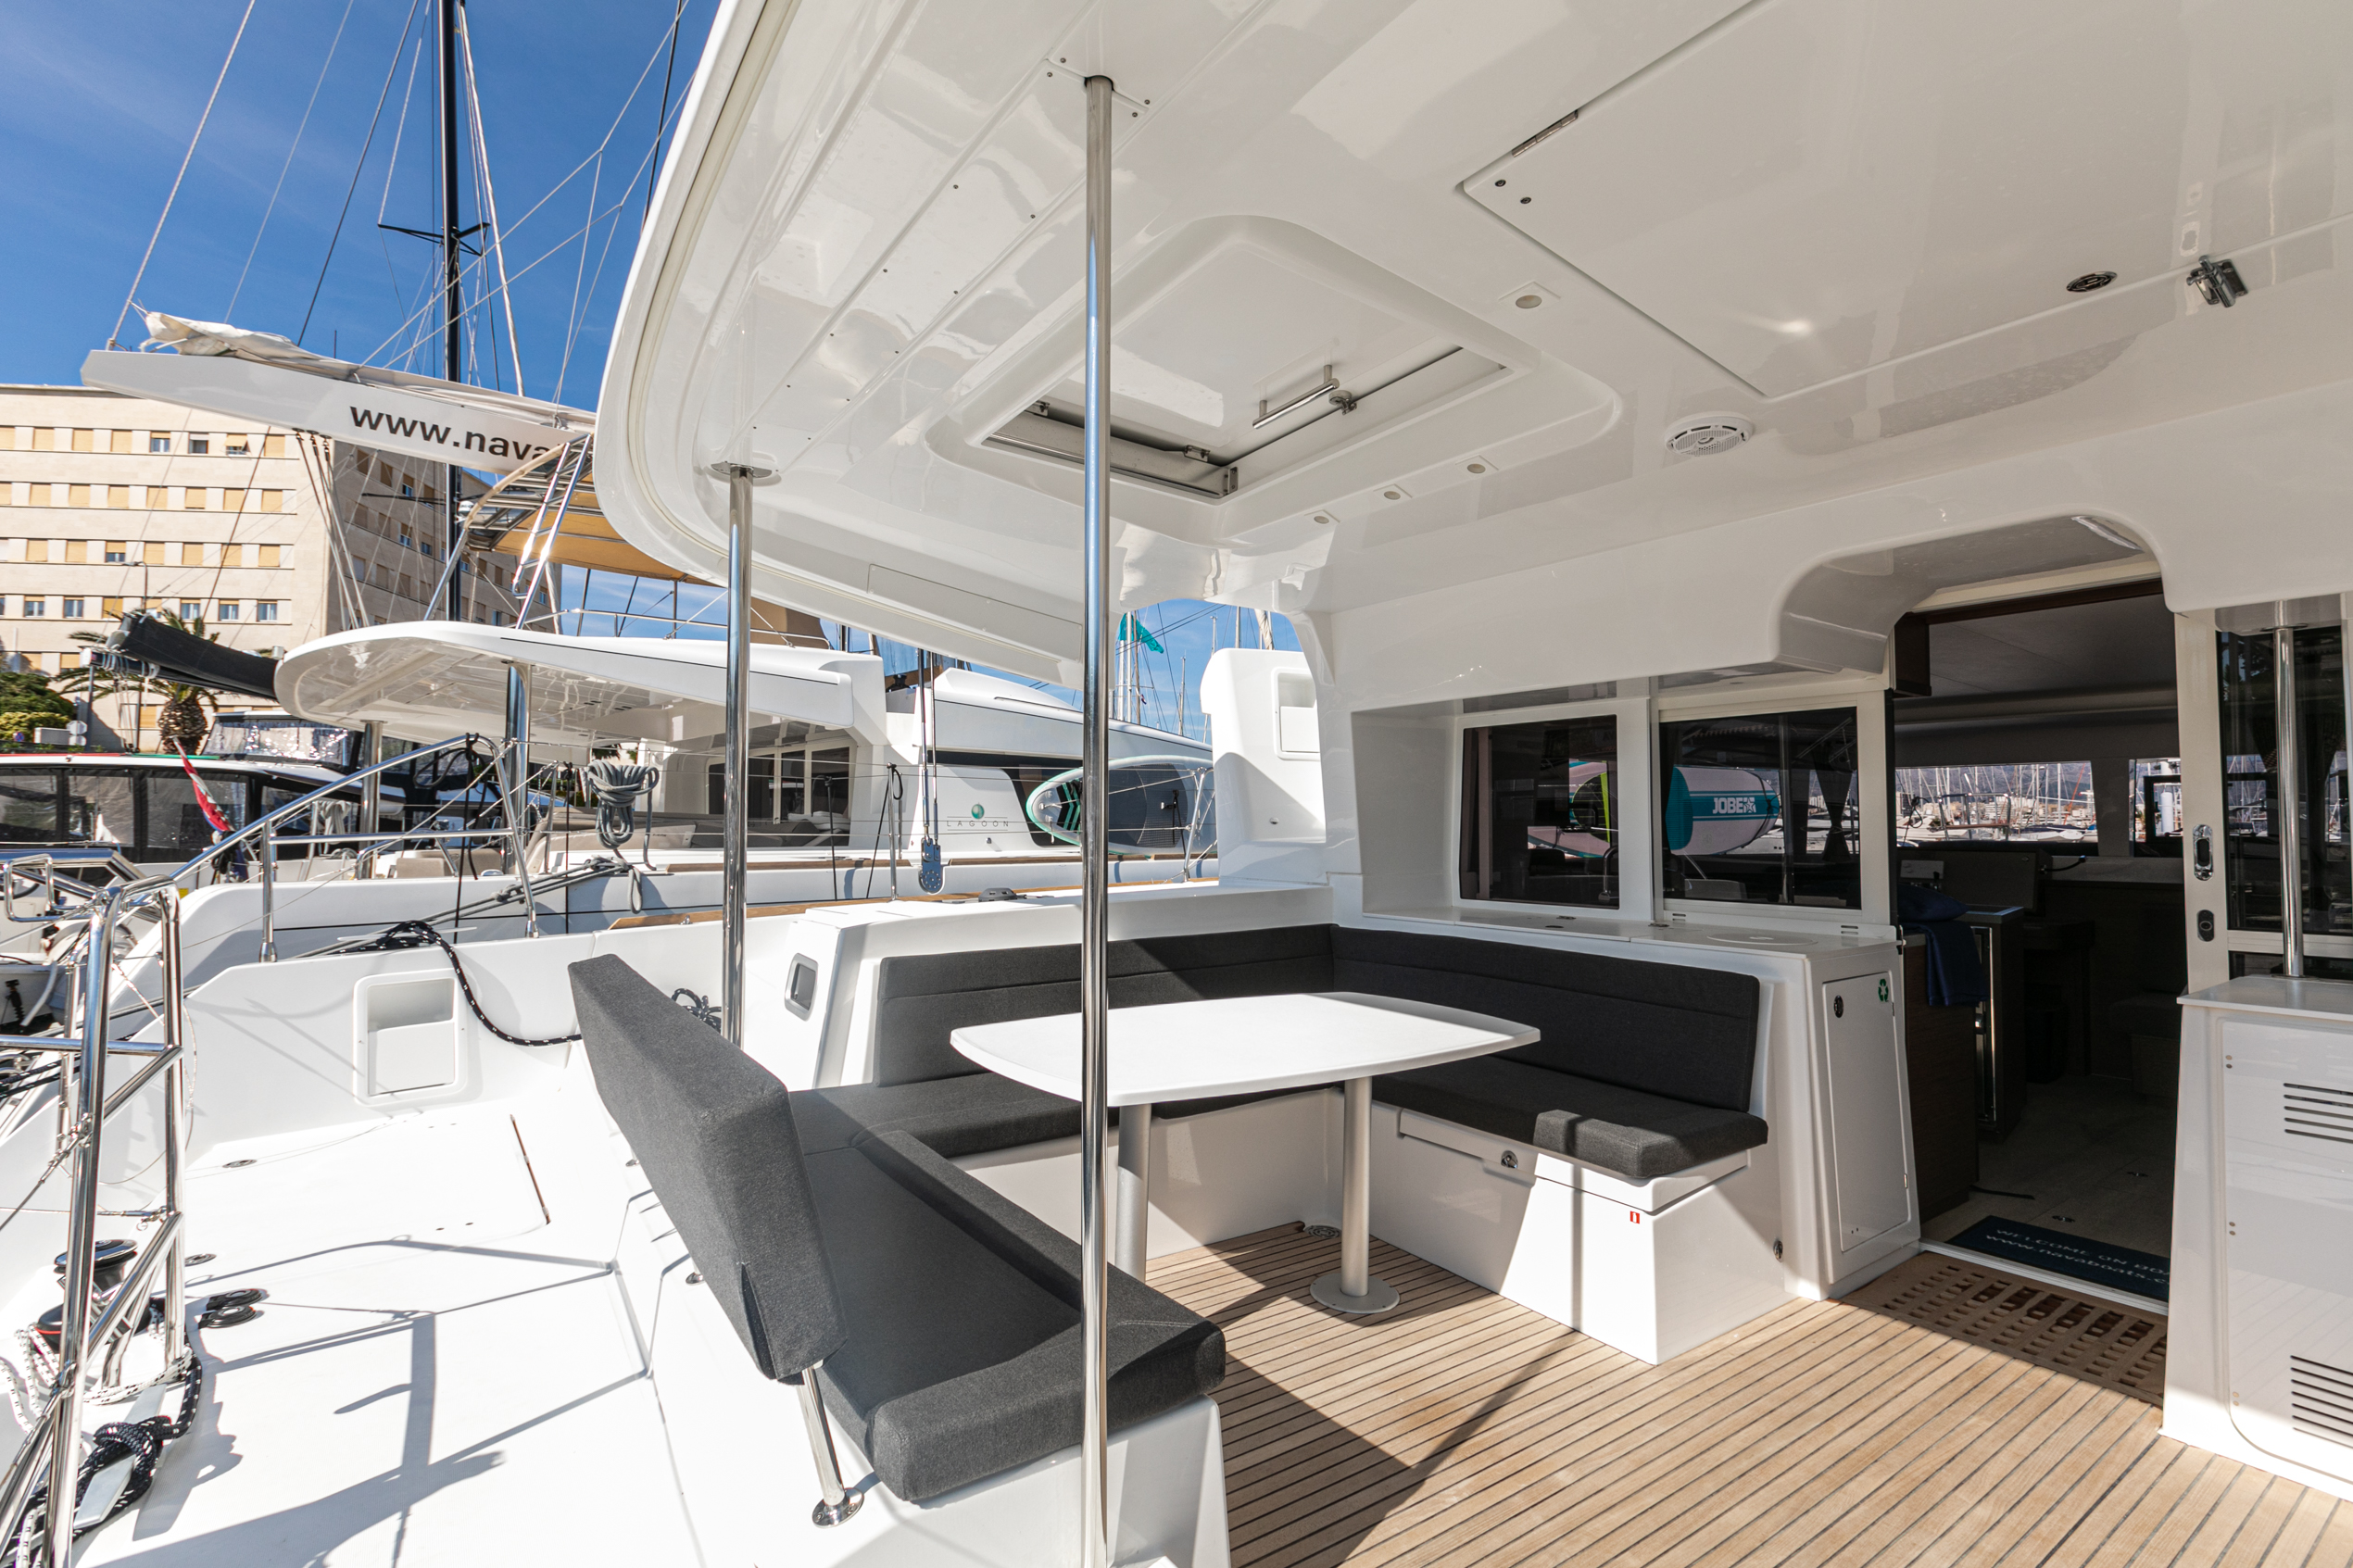 Lagoon 450 F (2019) equipped with generator, A/C ( (WIDE DREAM)  - 12